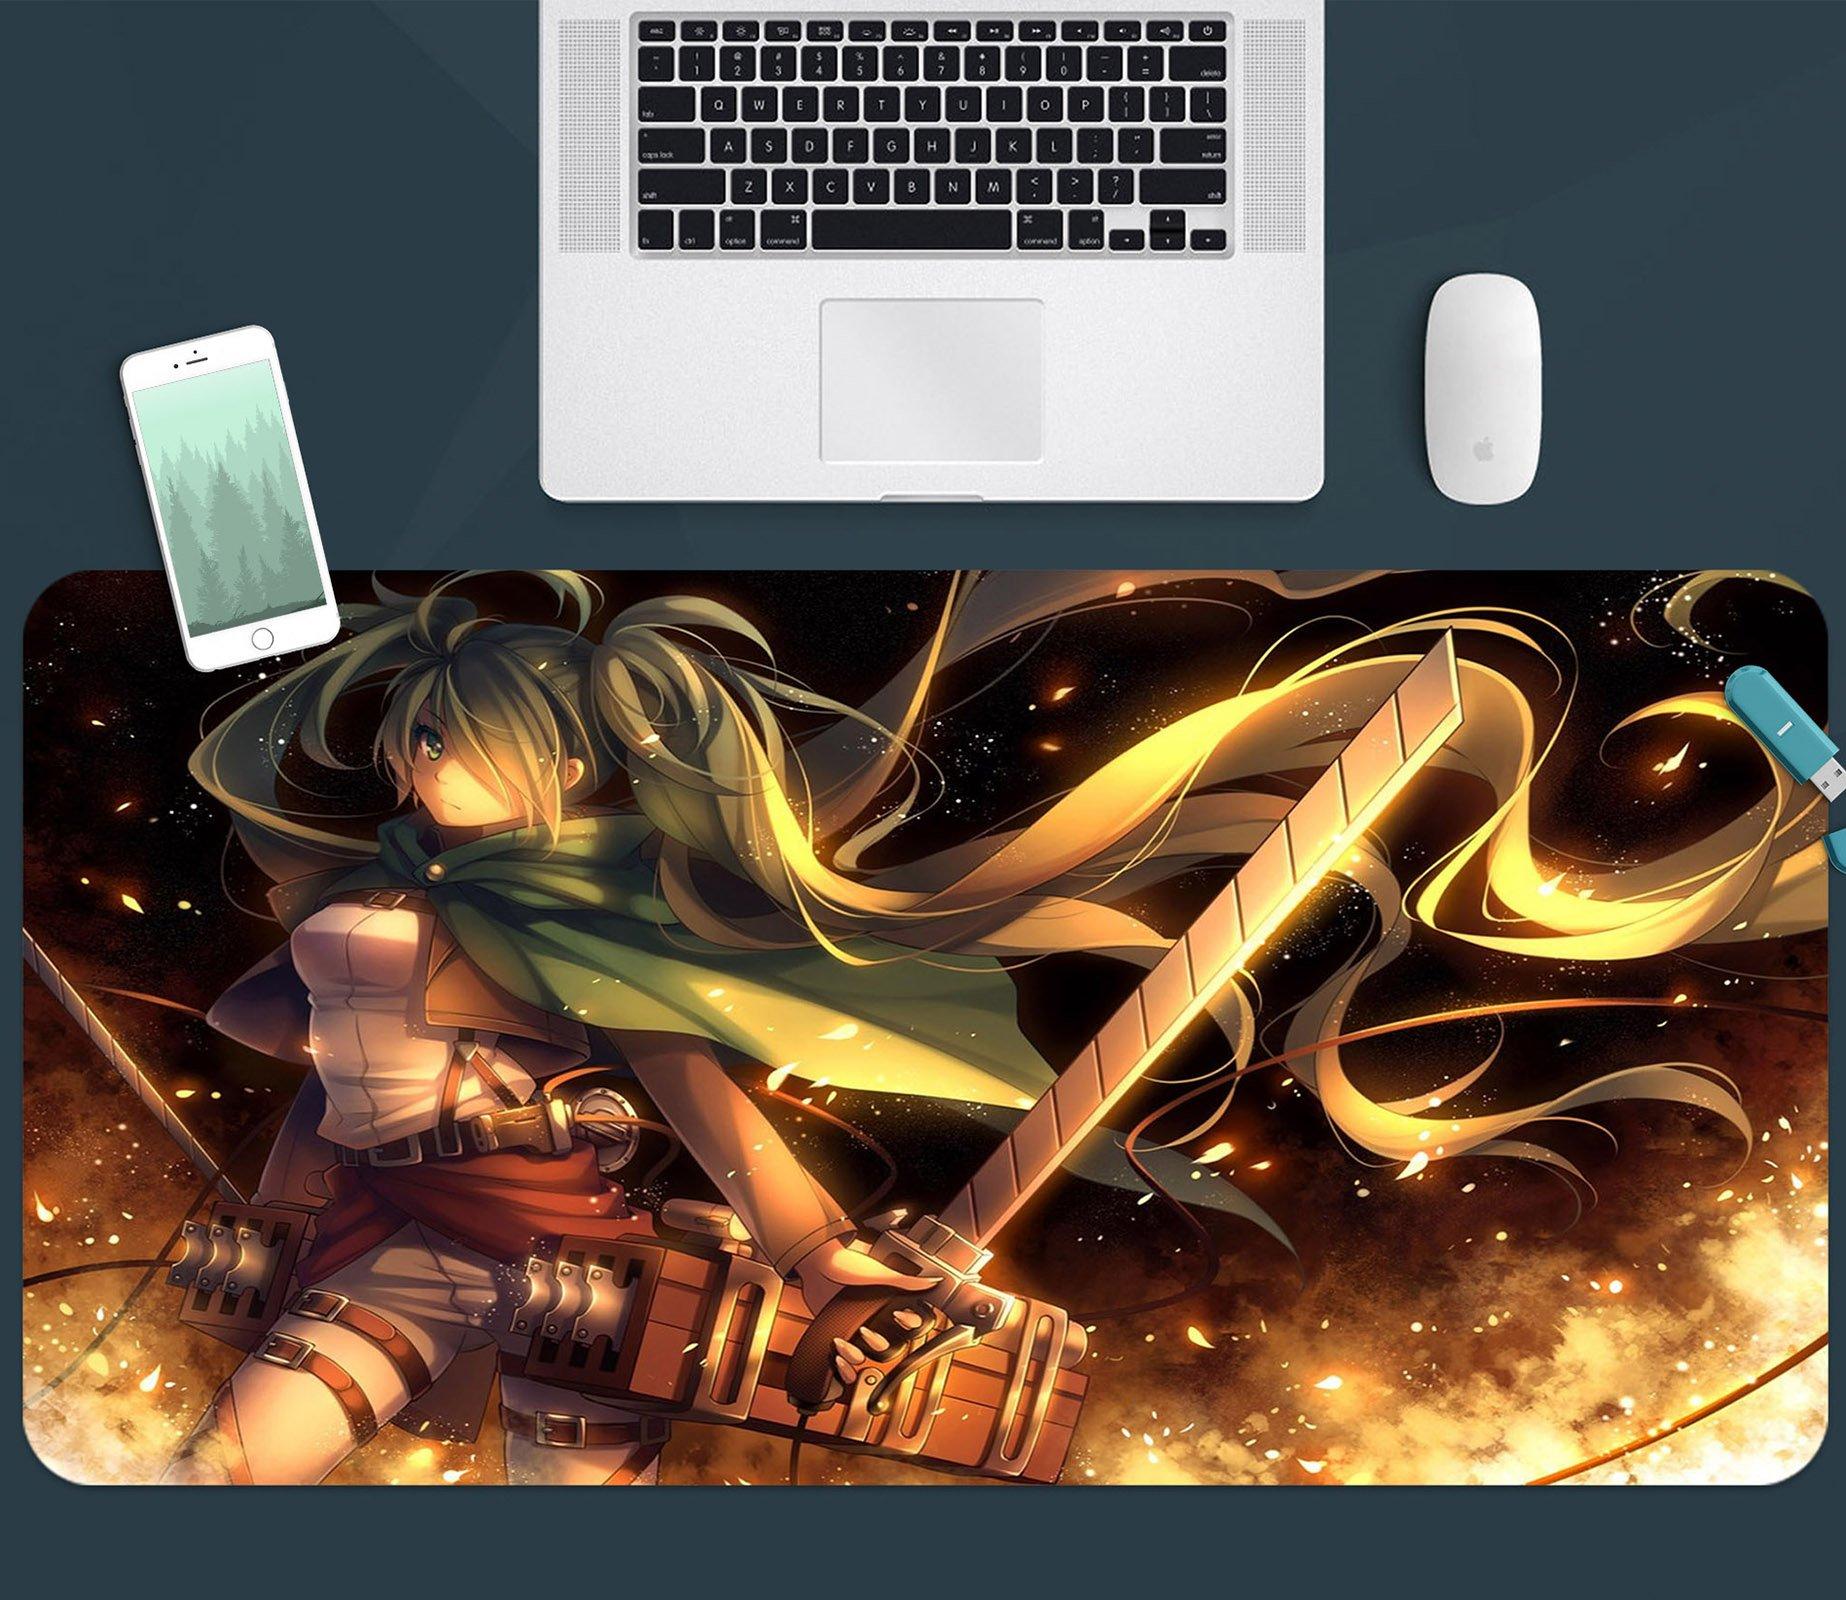 What Alberto Savoia Can Train You About Anime Mouse Pads With Wrist Support